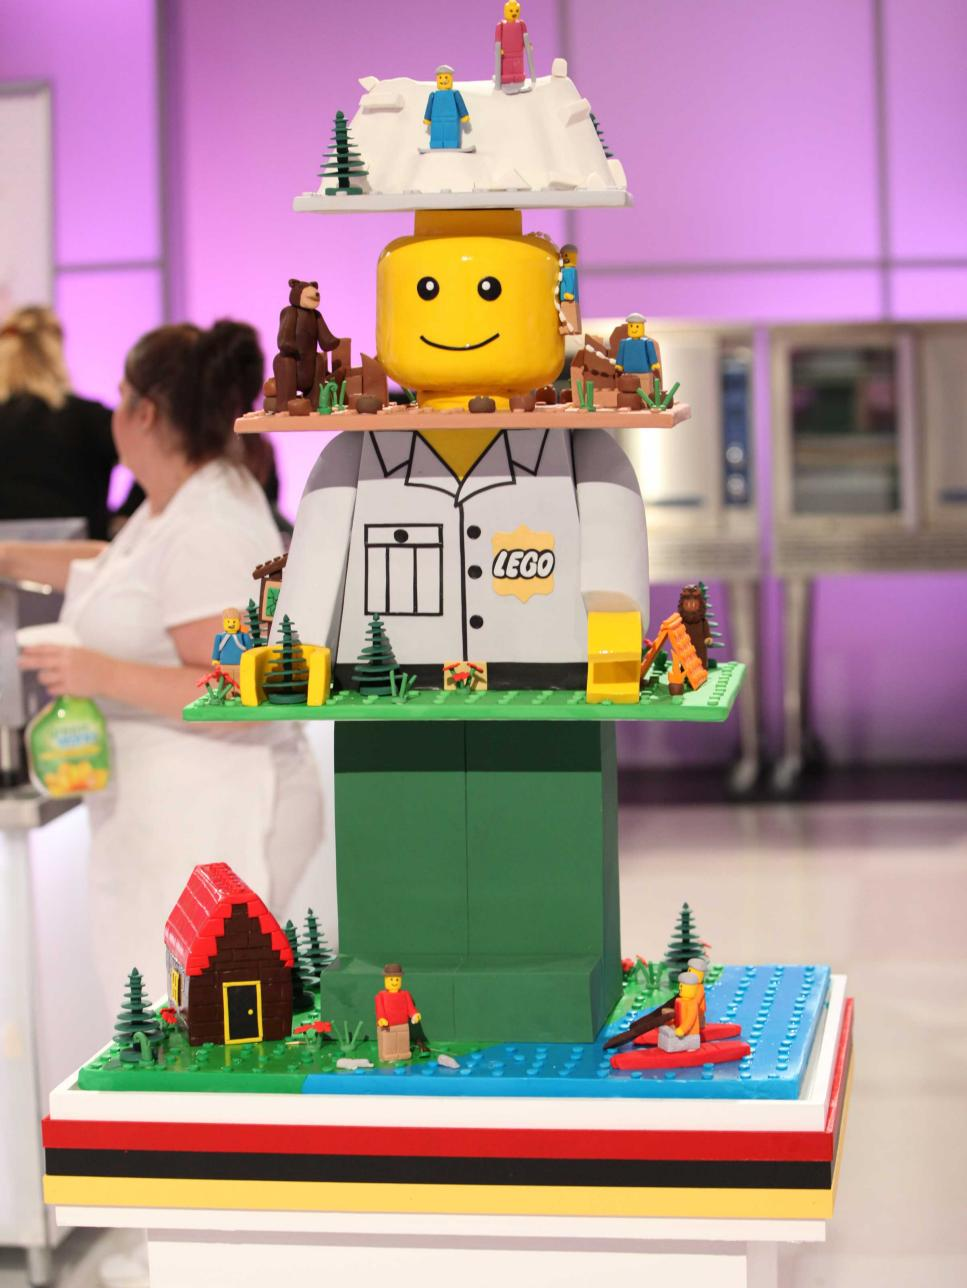 FOOD NETWORK - CAKE WARS - CHAMPIONS            -1st Place - WINNER2017 - Season 6 Episode 4 -Lego -Assistant to Kristina Serfass of BAKEDFOOD NETWORK CHALLENGE -2nd Place winner2011 - Season 13 Episode 3 -Renaissance Festival-Assistant to Derek Corsino